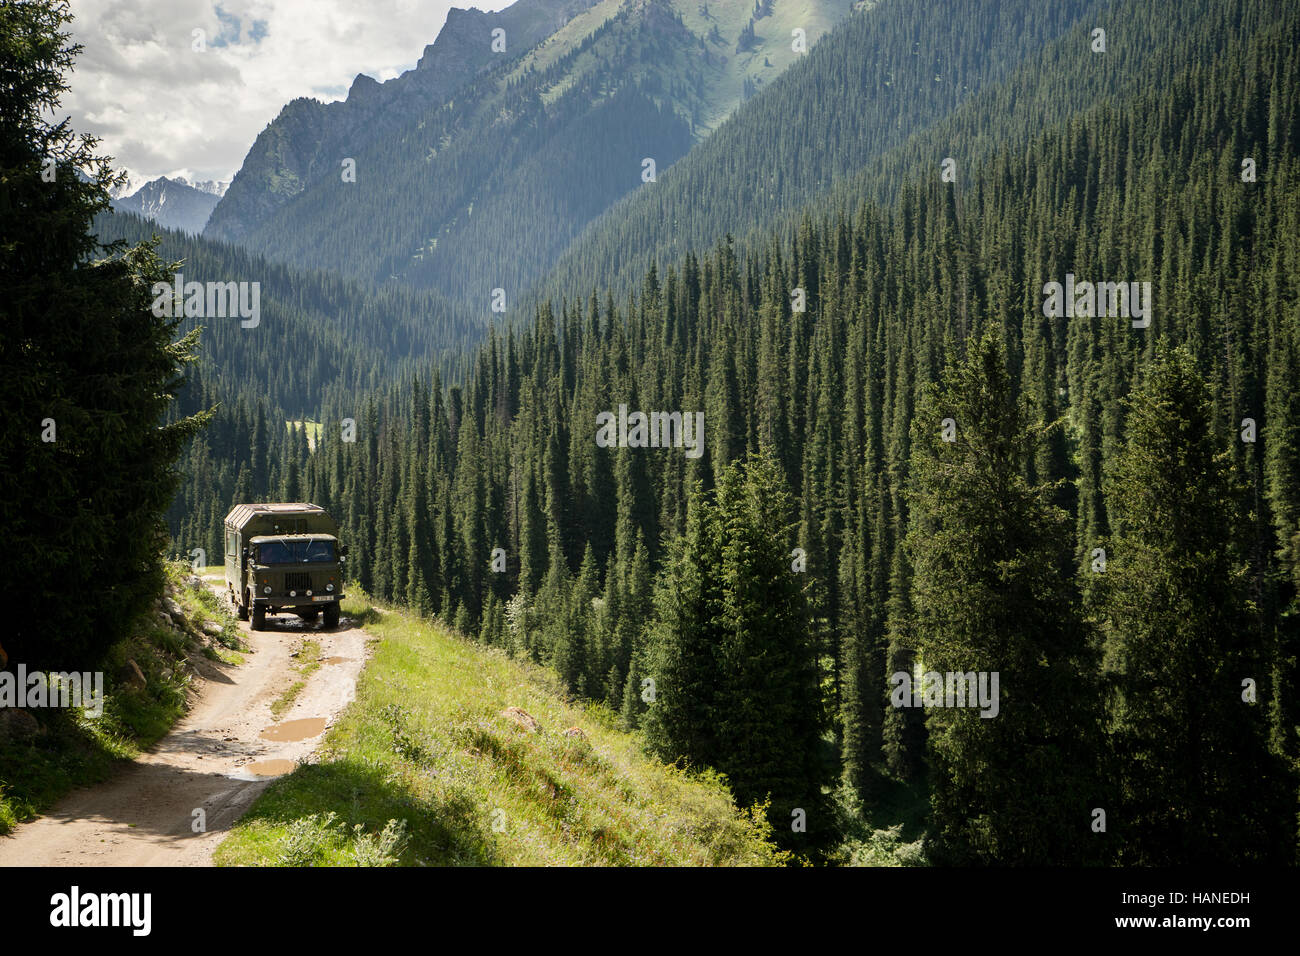 A military truck travels on an unpaved road through the valley full of conifers - Stock Image